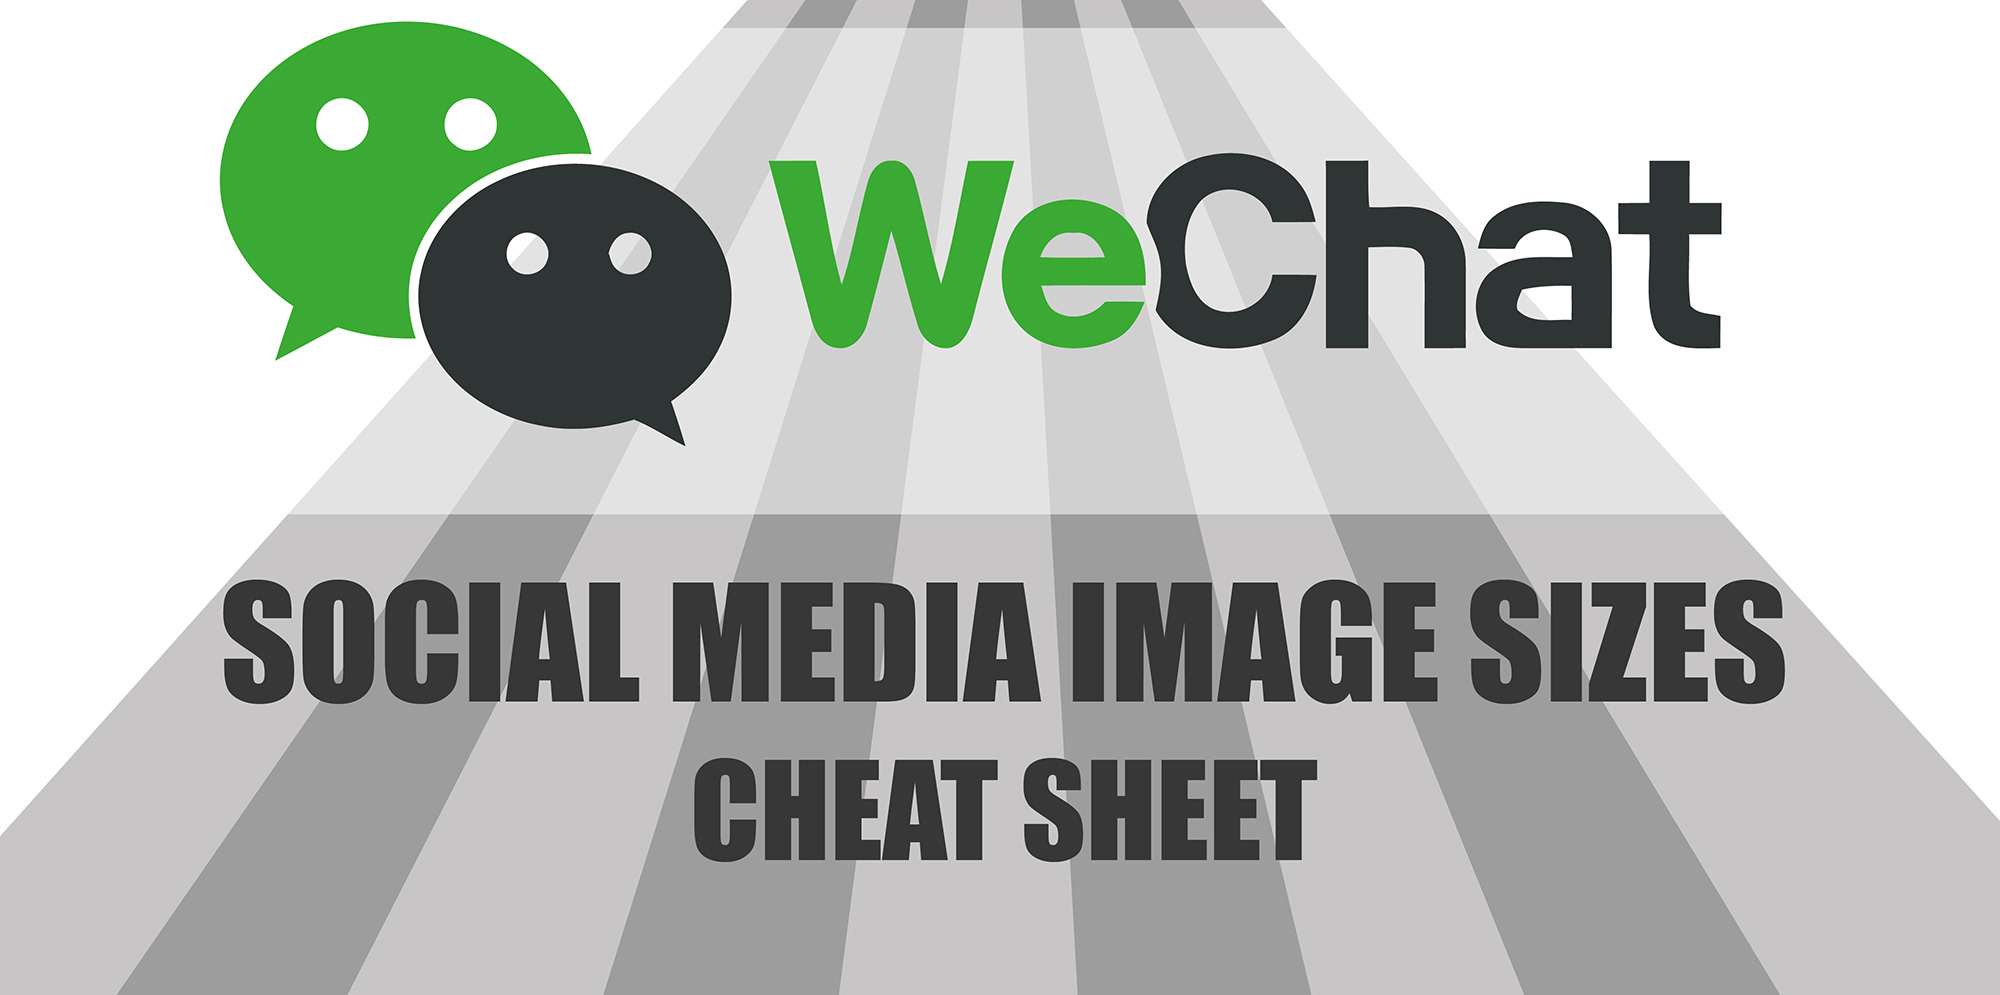 WeChat Social Media Image Sizes Cheat Sheet - 2017 Edition - Make A